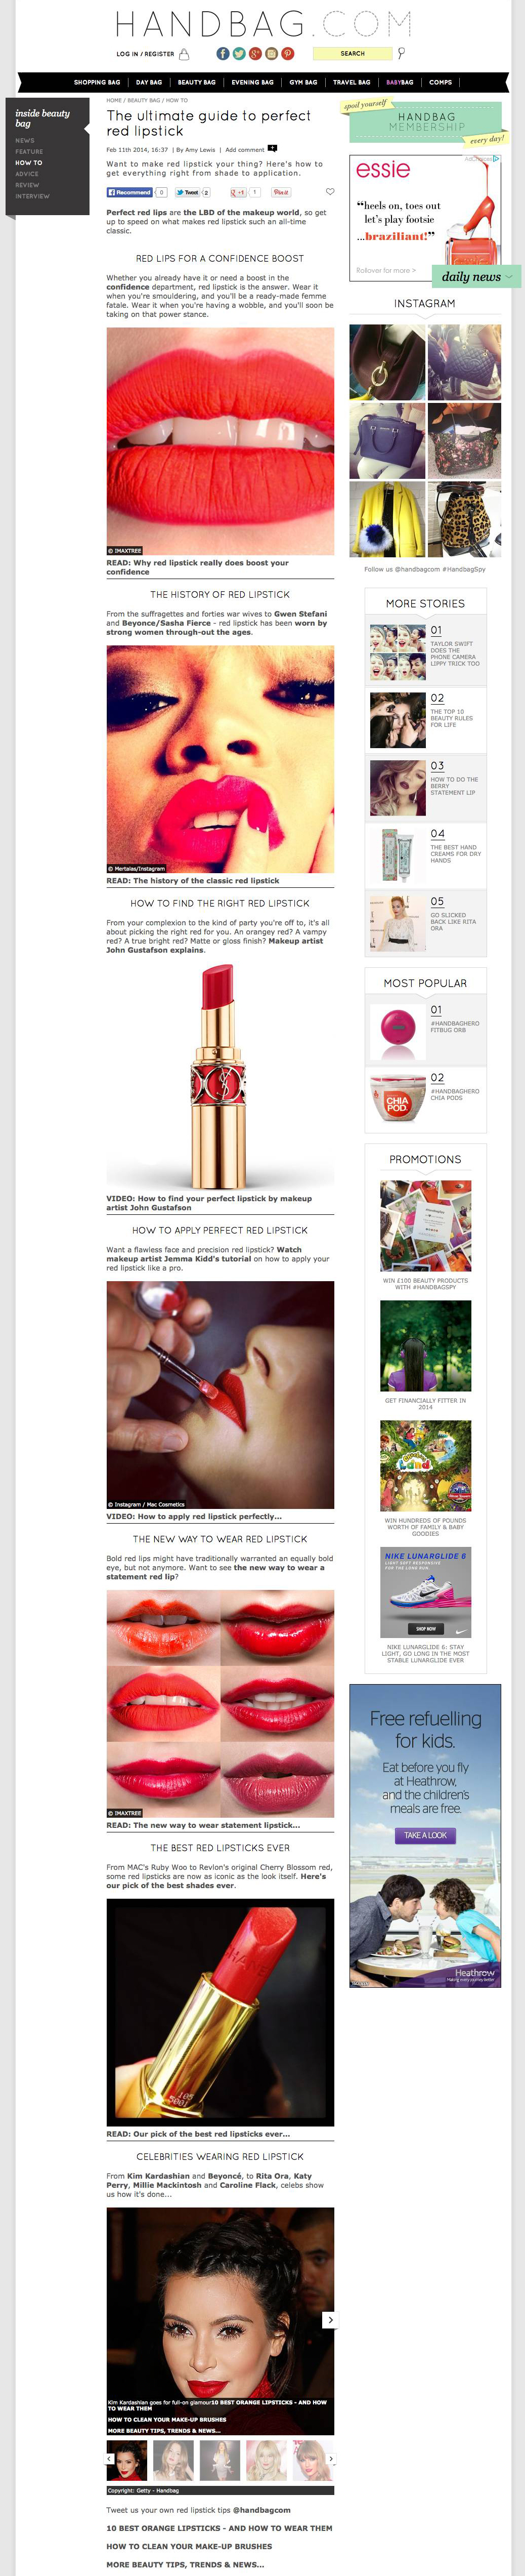 The_ultimate_guide_to_perfect_red_lipstick_-_Beauty_Bag_How_to_-_handbag.com_-_2014-07-31_11.06.42.png